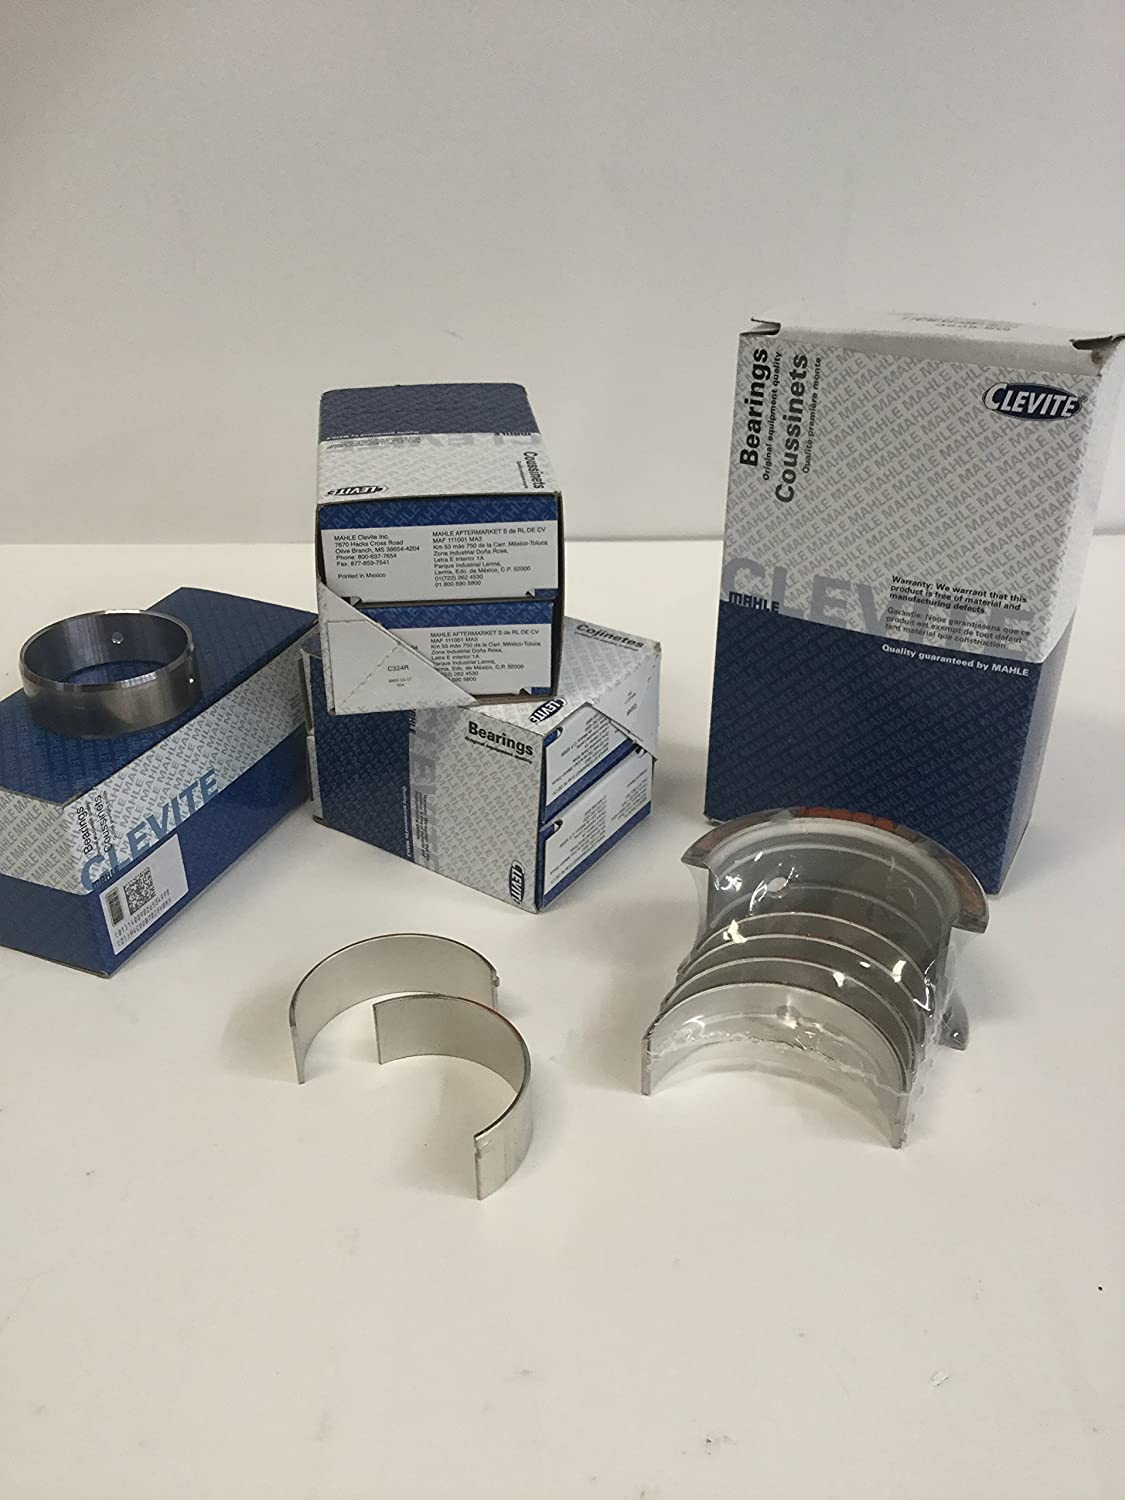 Clevite 77 Rod& Main & Cam Bearing Kit compatible with Small Block Chevy 350 327 307 305 302 267 265 (.010 rods/.10 mains) Mahle